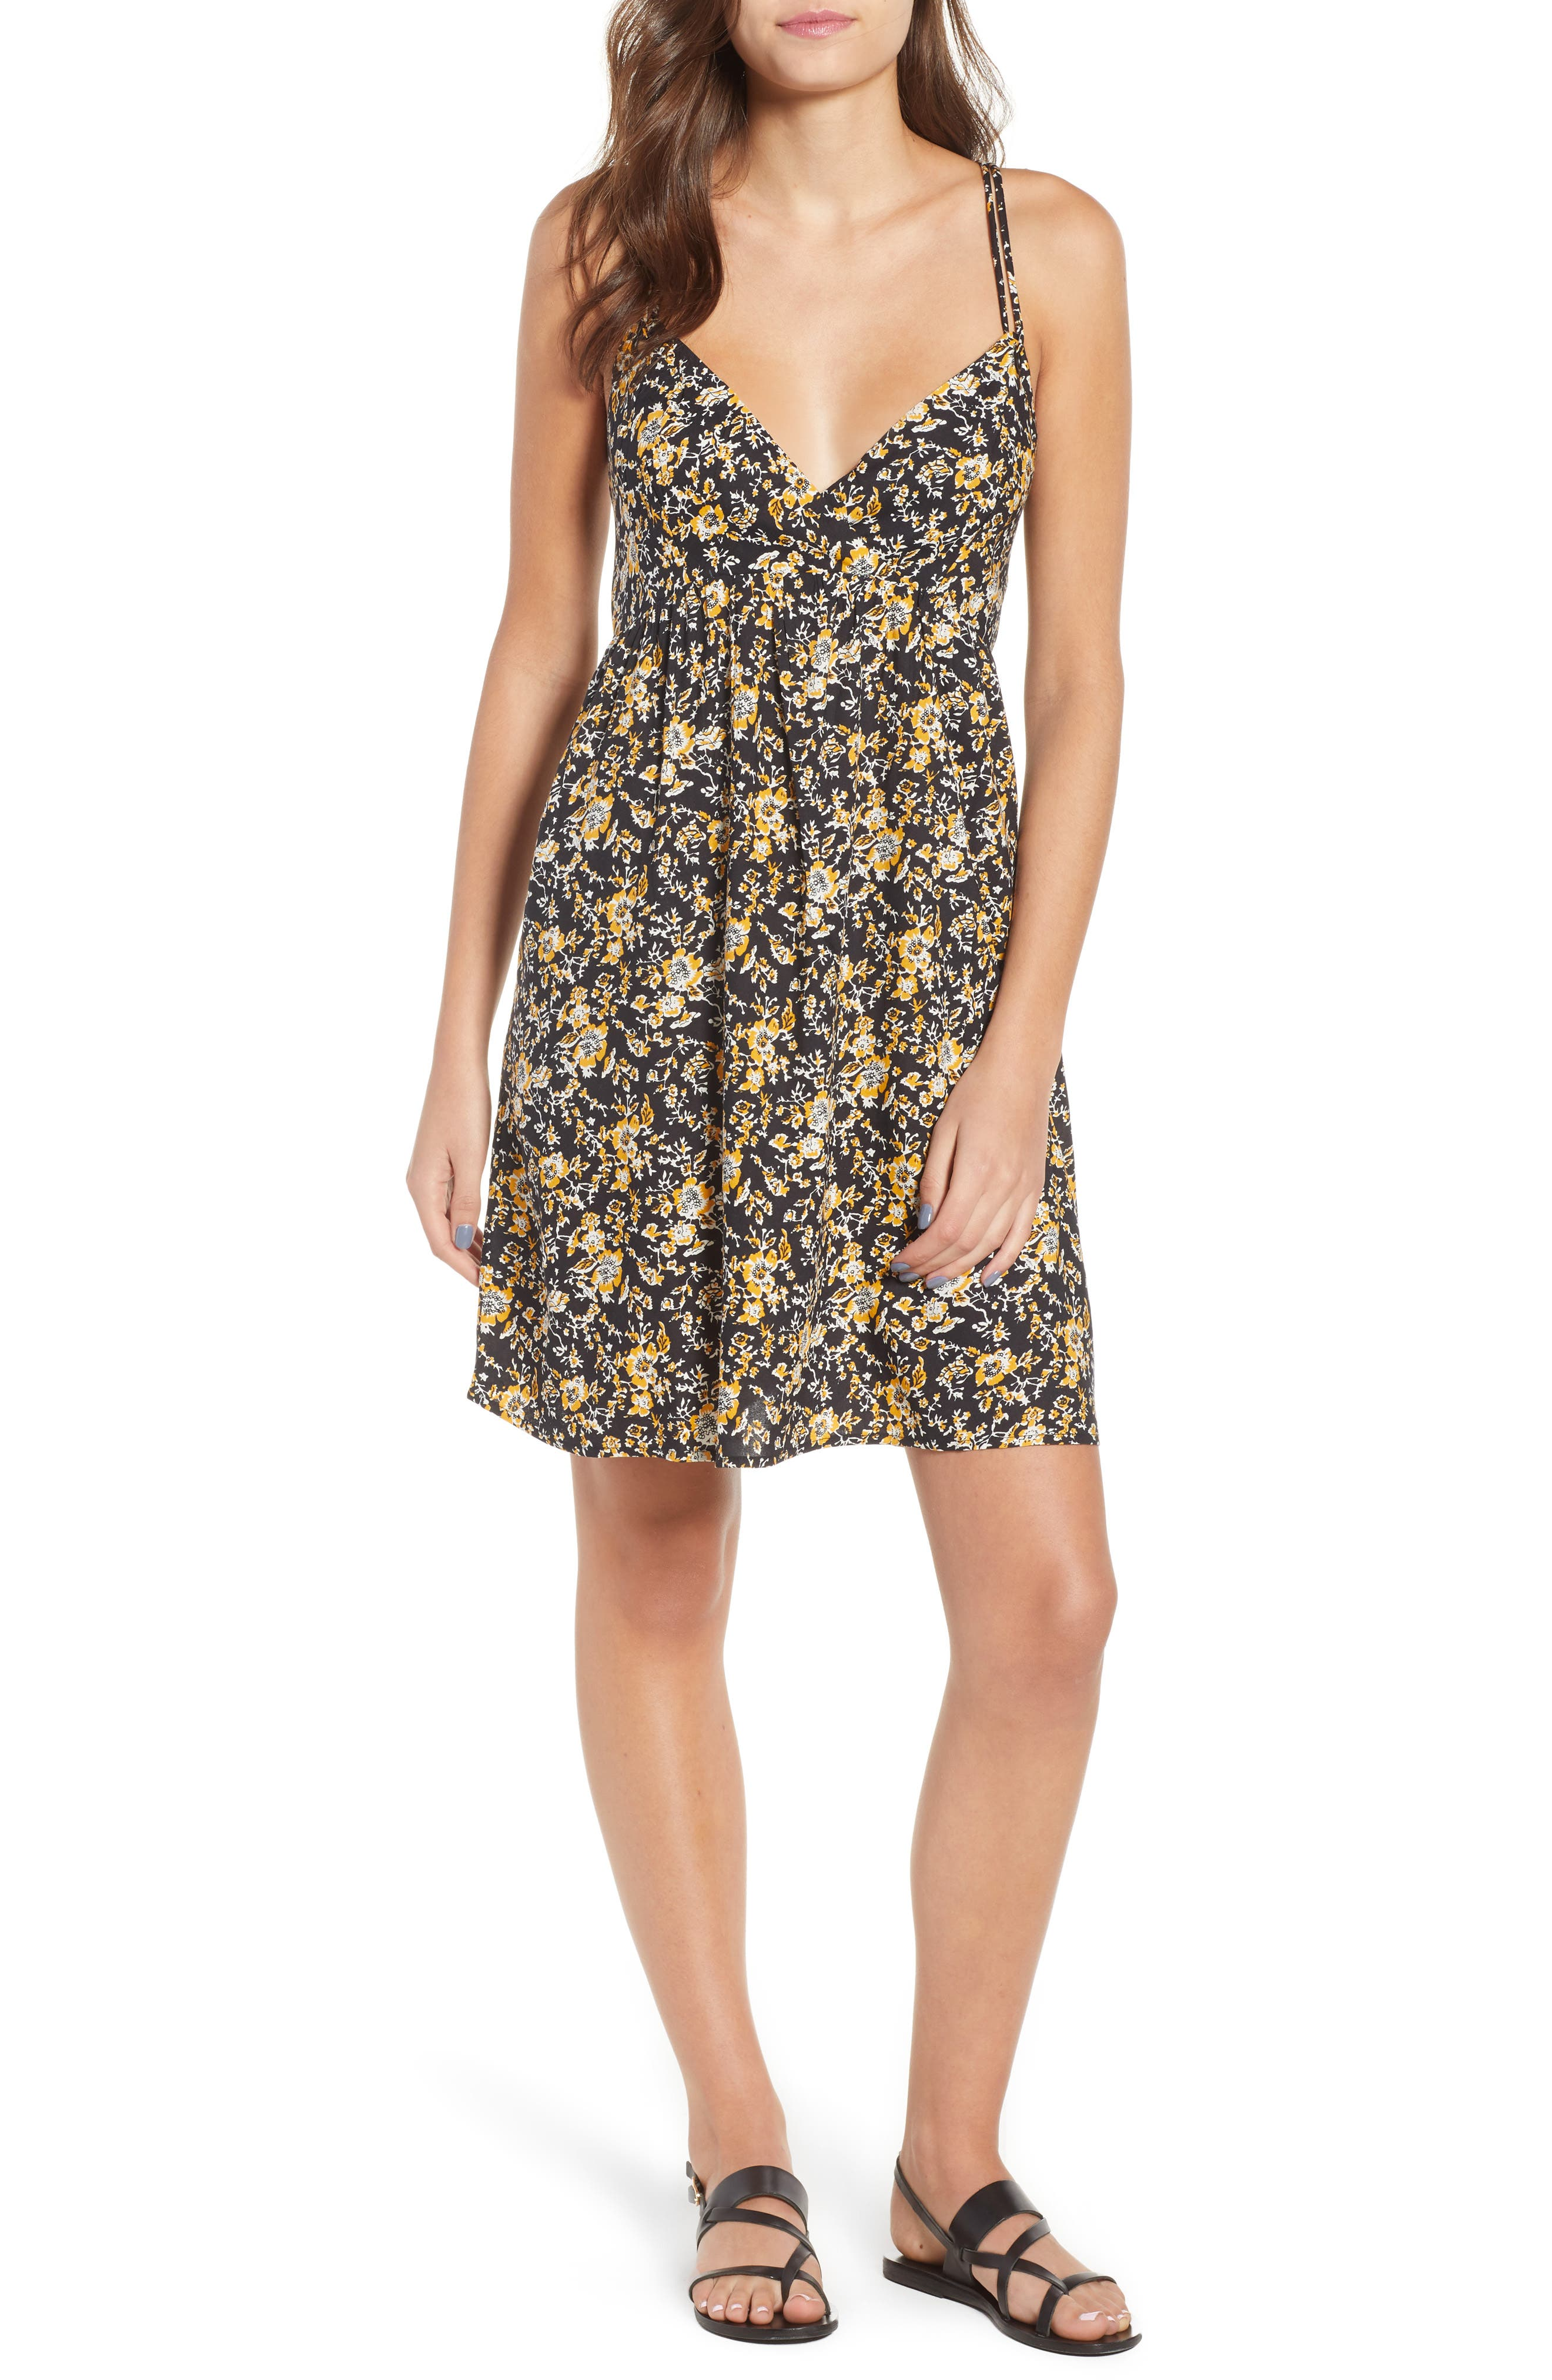 Volcom You Want This Strappy Dress